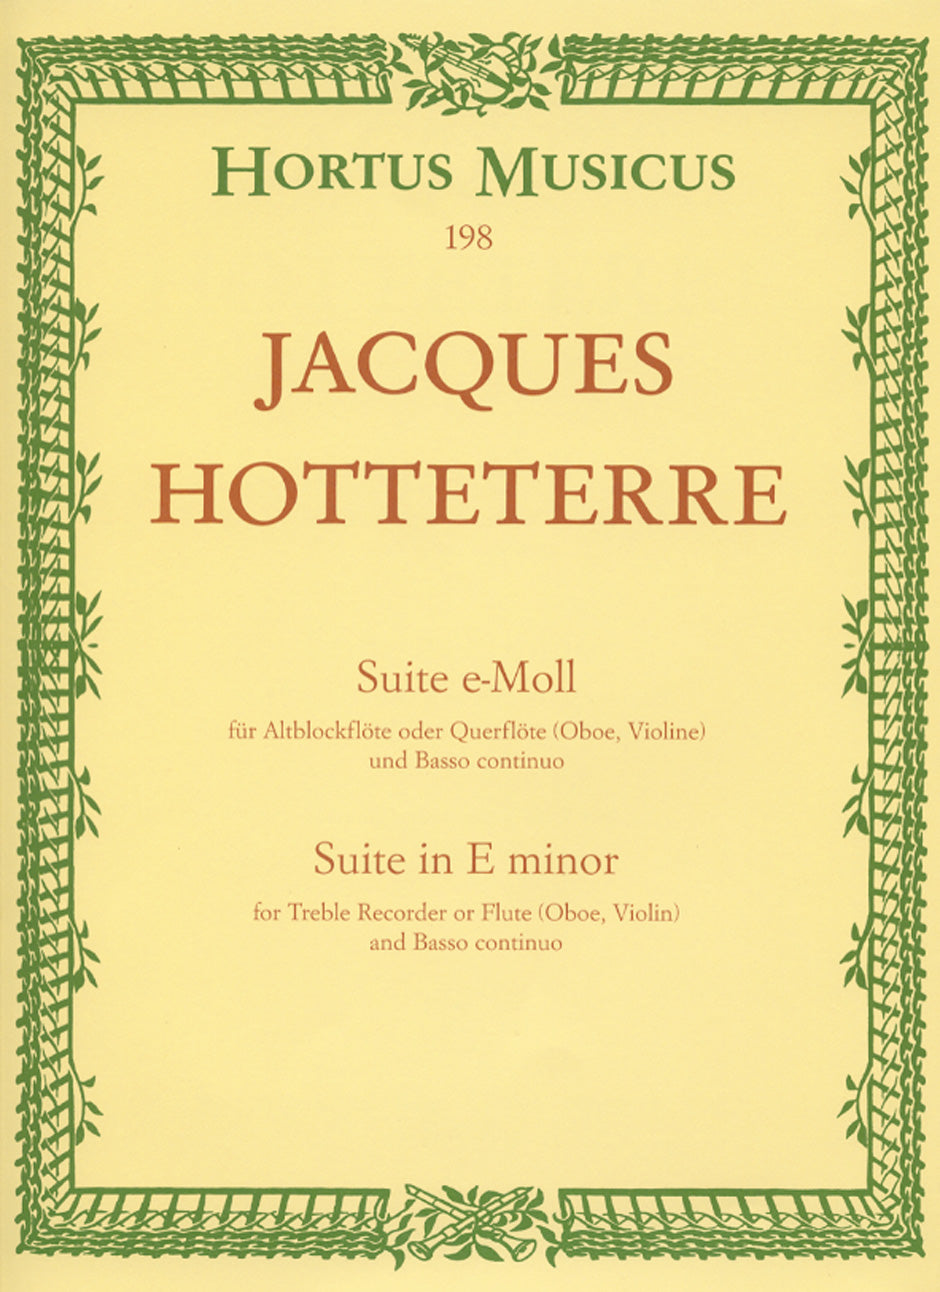 Hotteterre: Suite in E Minor, Op. 5, No. 2